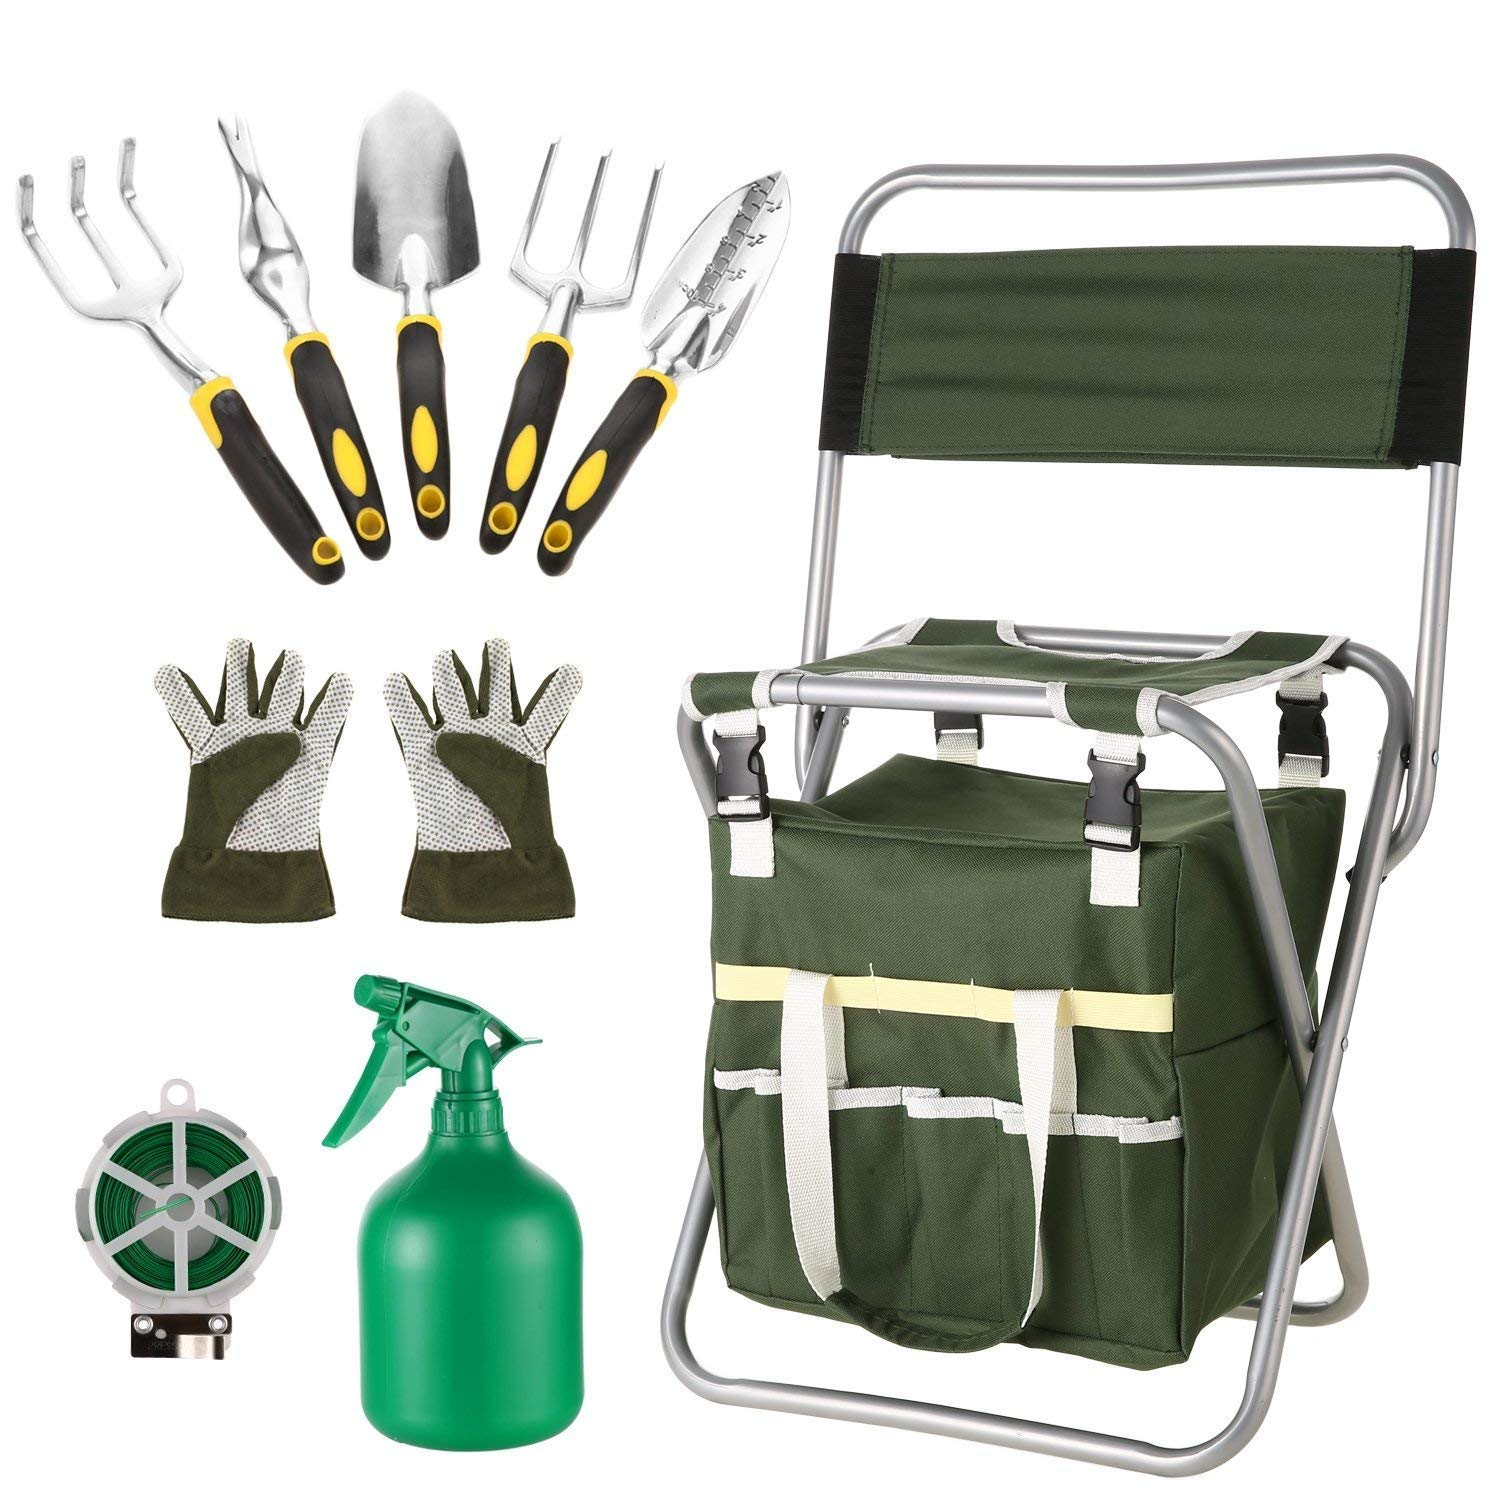 Meflying Garden Tools Kit, 10 Piece Gardening Tool Set, Foldable Stool with Backrest and Zippered Detachable Tote, 5 Gardening Hand Tools, Gloves, Sprayer, 50M Plant Ties (US STOCK)